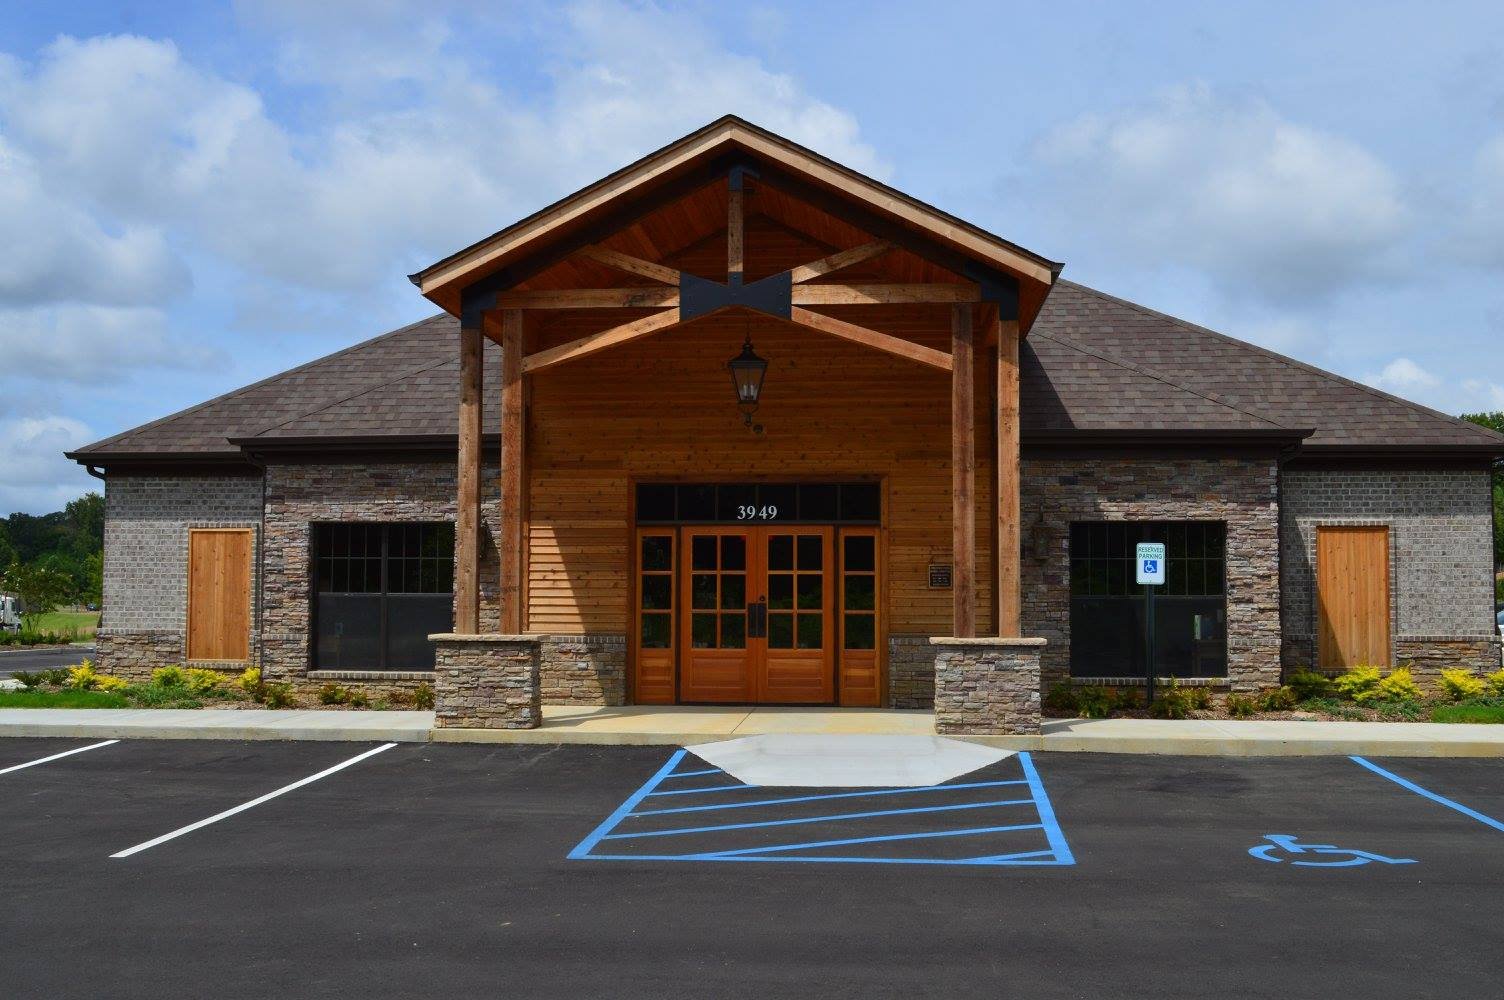 Mississippi's Top Rated Local® Veterinarians Award Winner: Precious Paws Animal Hospital